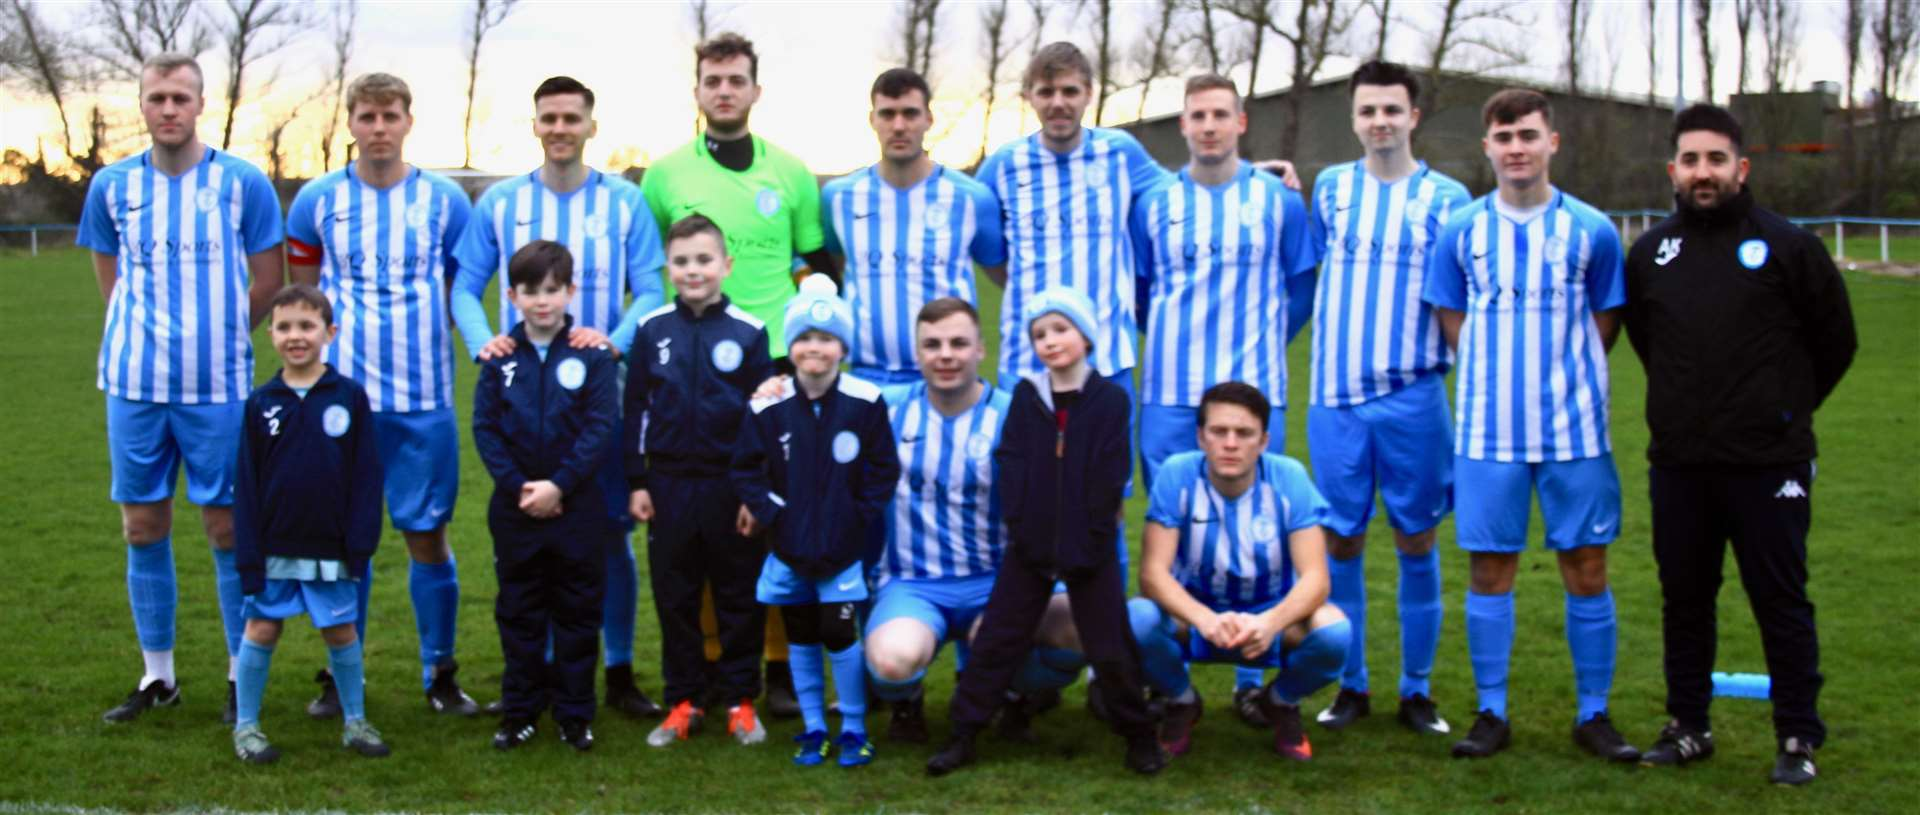 Chatteris Town - First Team 2018-19 (Back, from left: Ash Blanchflower, Simon Howard, Gary Smith, Jordan Packi, Stuart Porter, Ben Matthews, Scott Fisher, Mark Rayment, Brandon Ransome, Alex Kaufman)(Front, from left: Josh Dodman with Chatteris Town Young Lilies Under 8's mascots, Jack Saunders. (6492426)